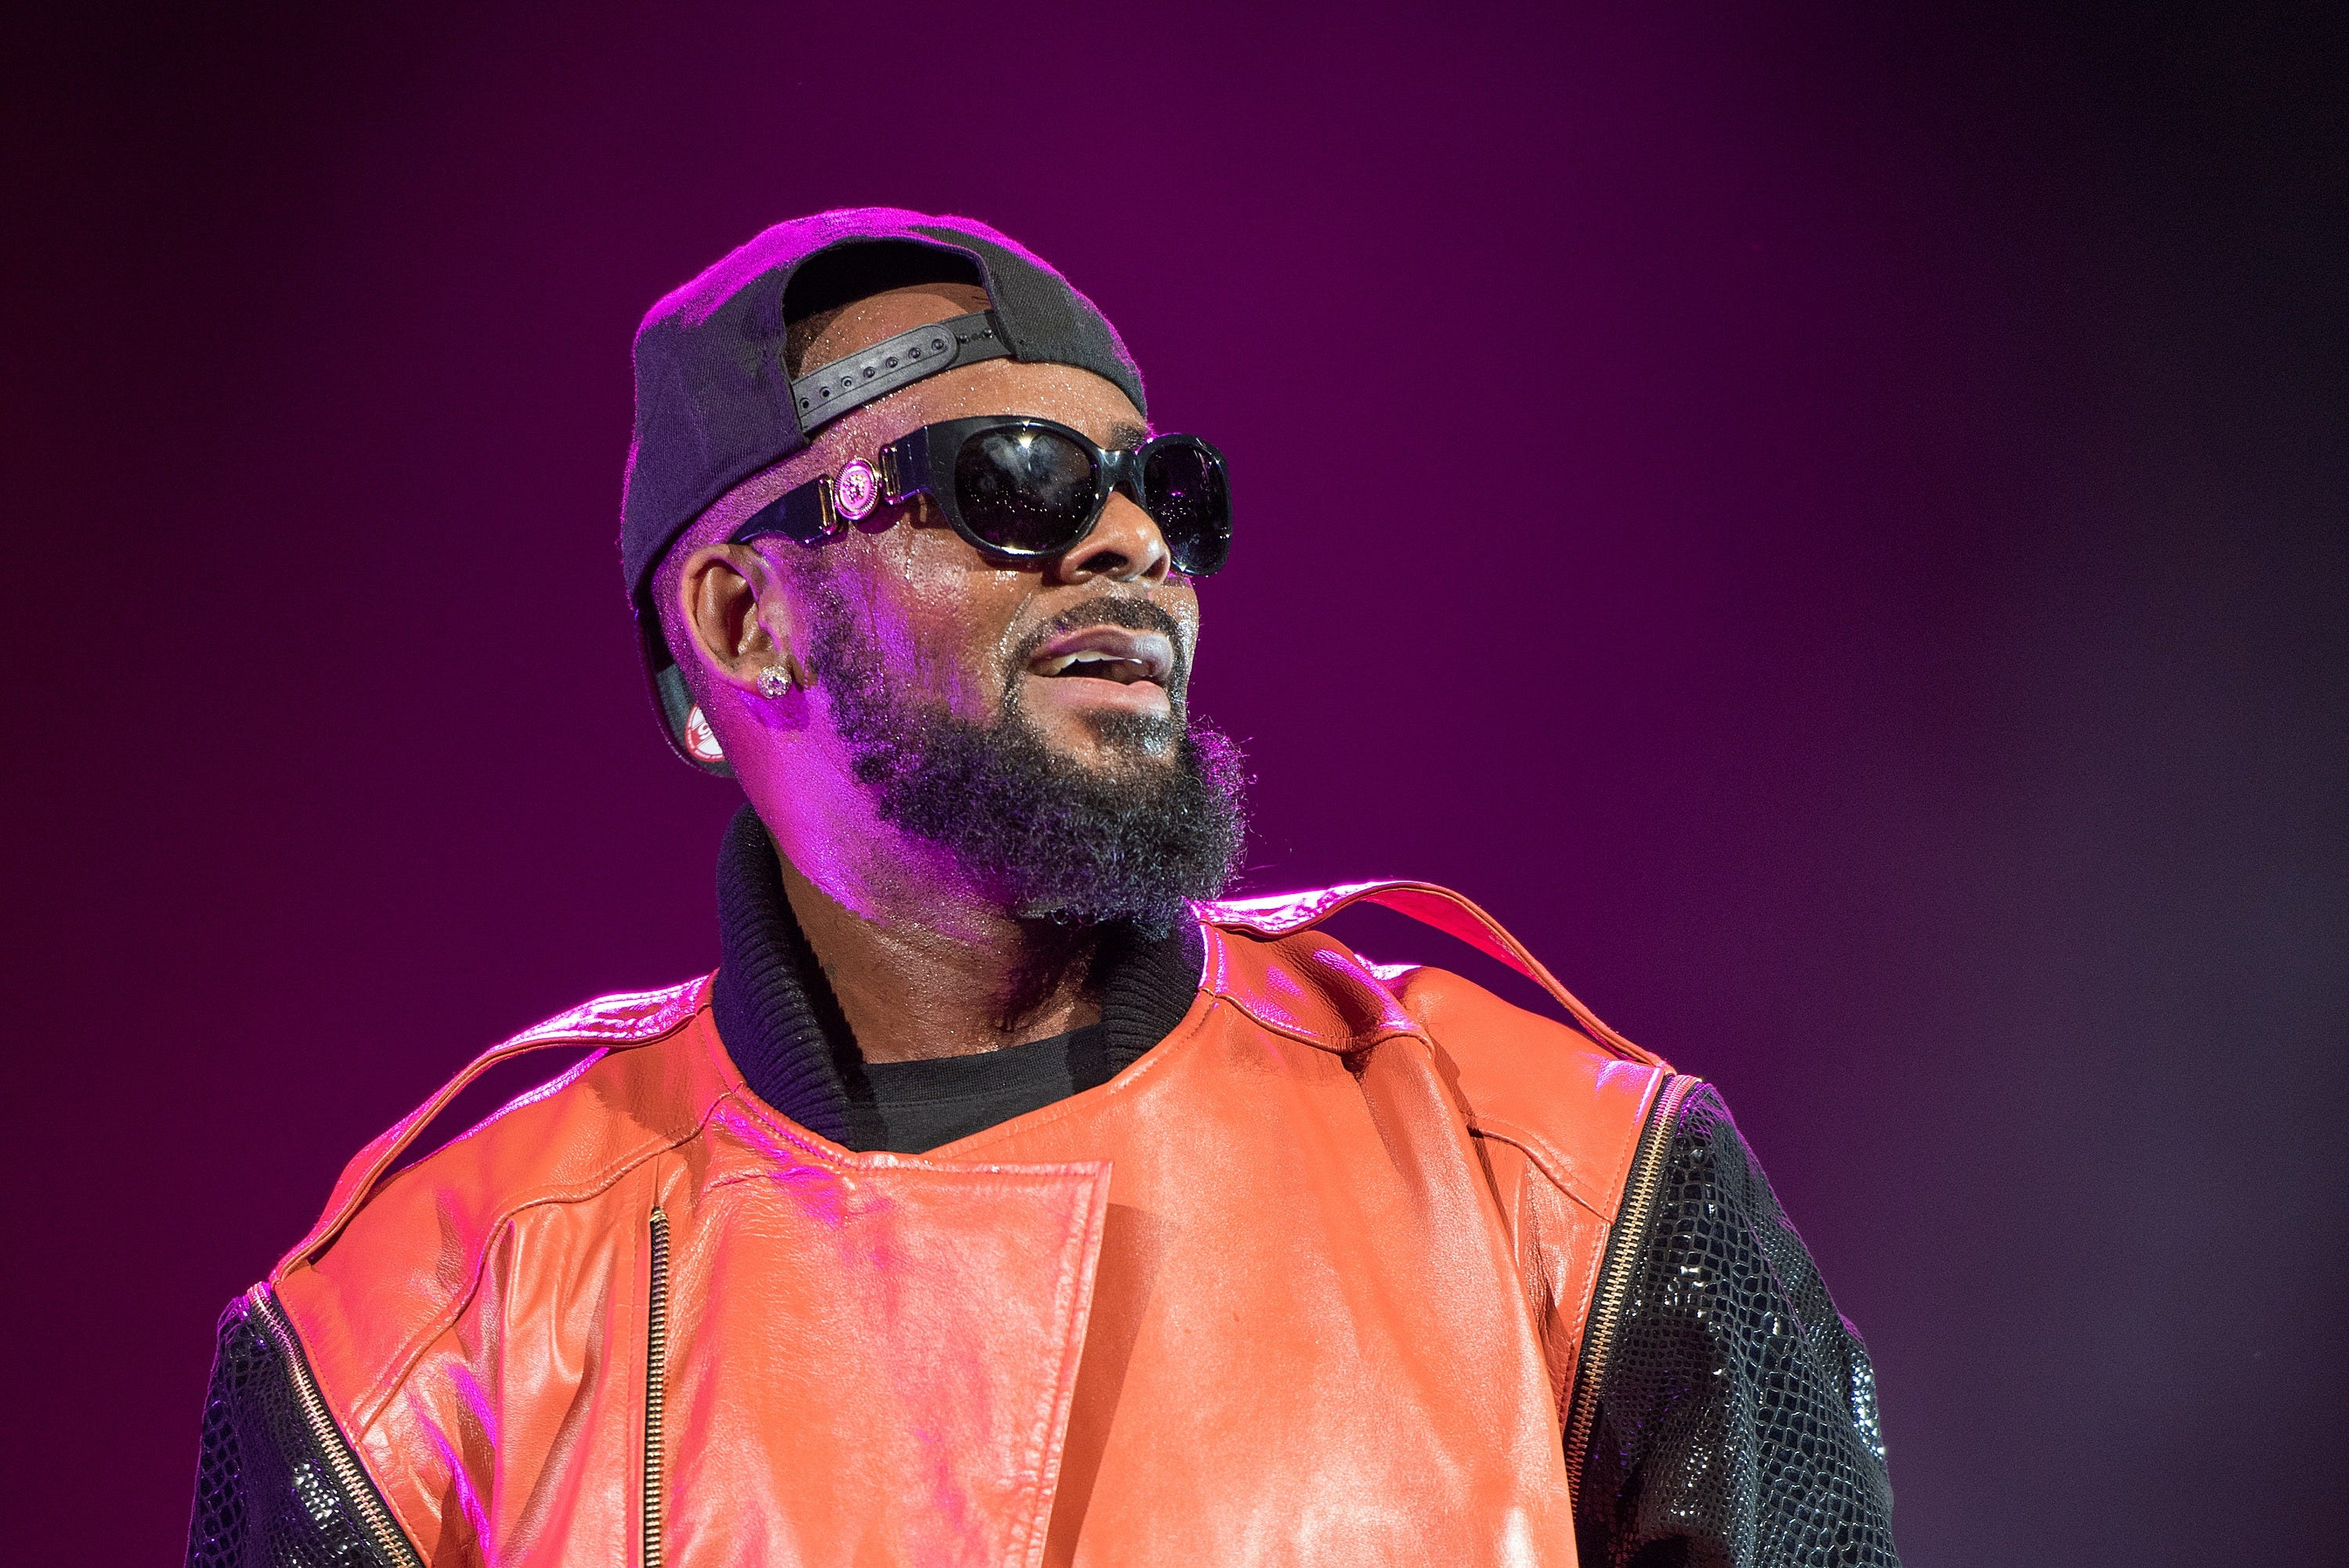 r-kelly-accuser-alleges-i-have-dna-proof-of-sexual-misconduct-on-soiled-t-shirt